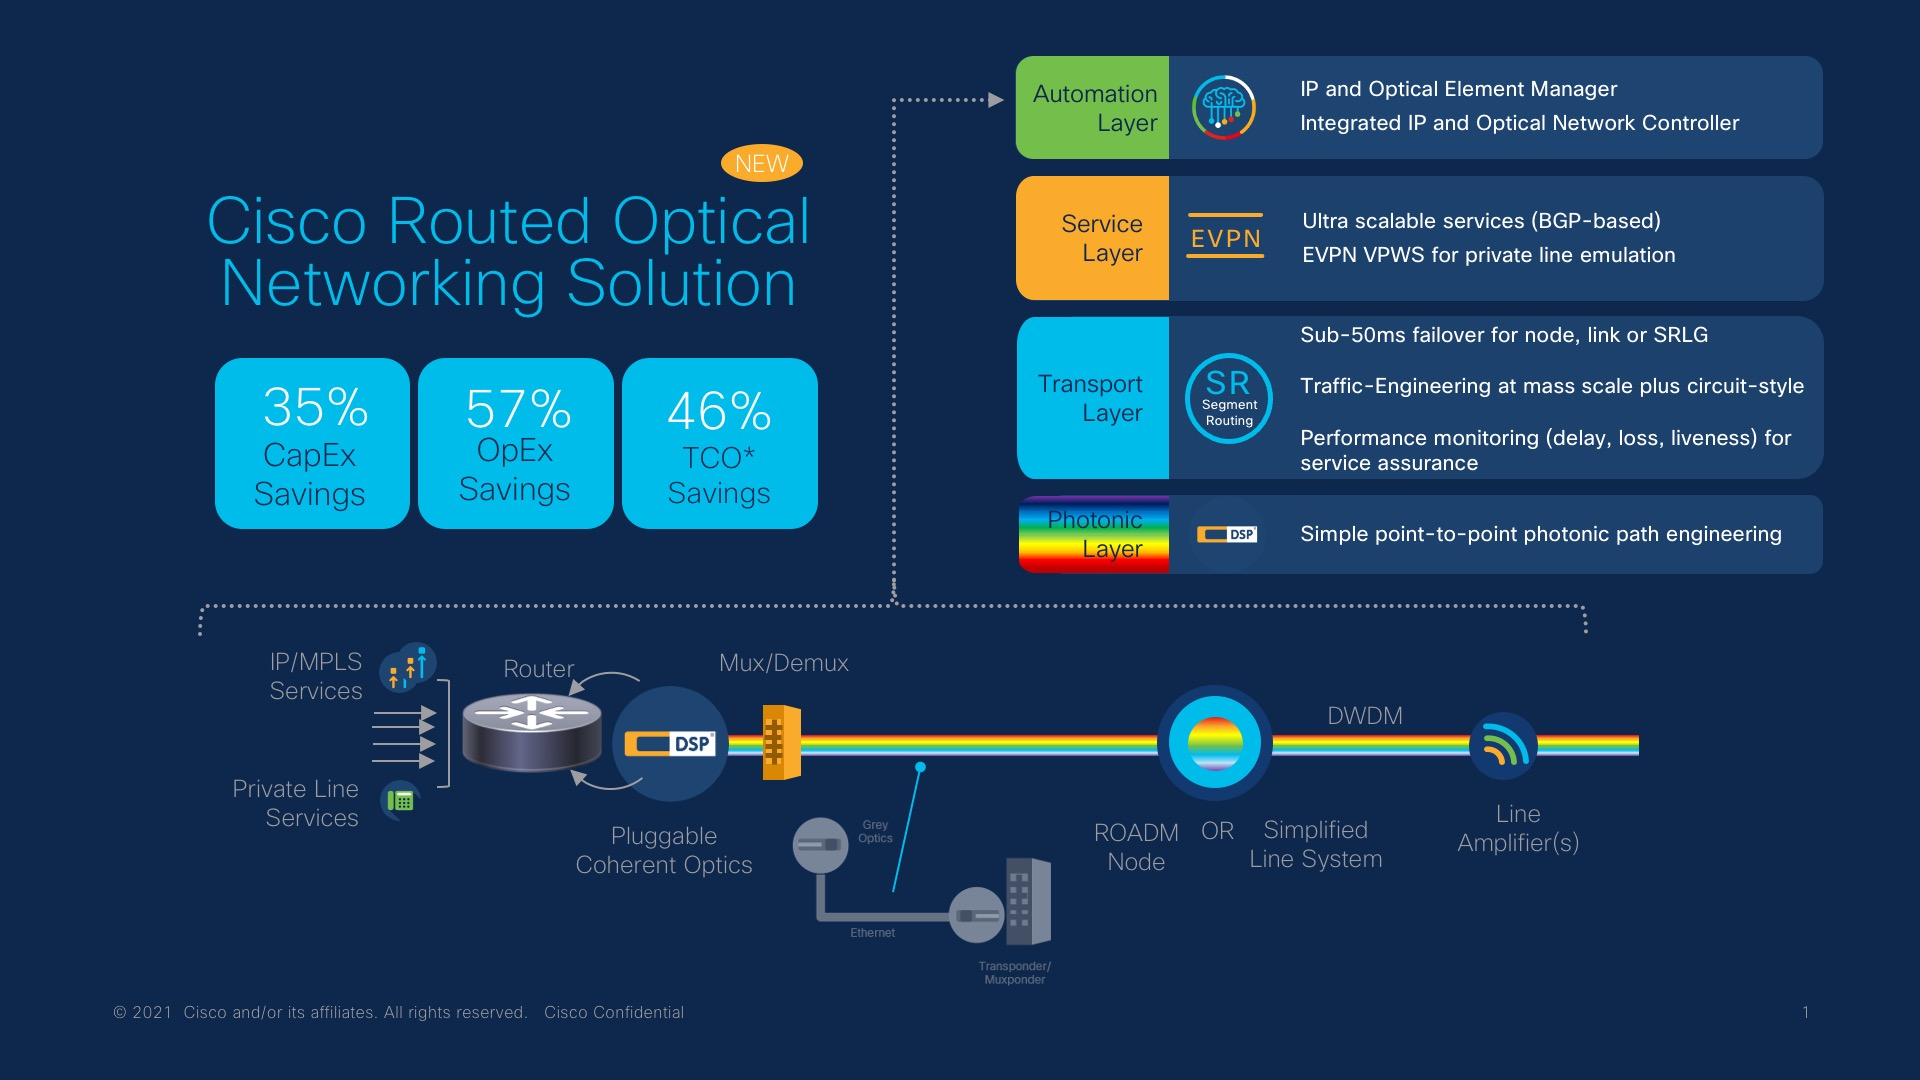 Cisco Routed Optical Networking Solution